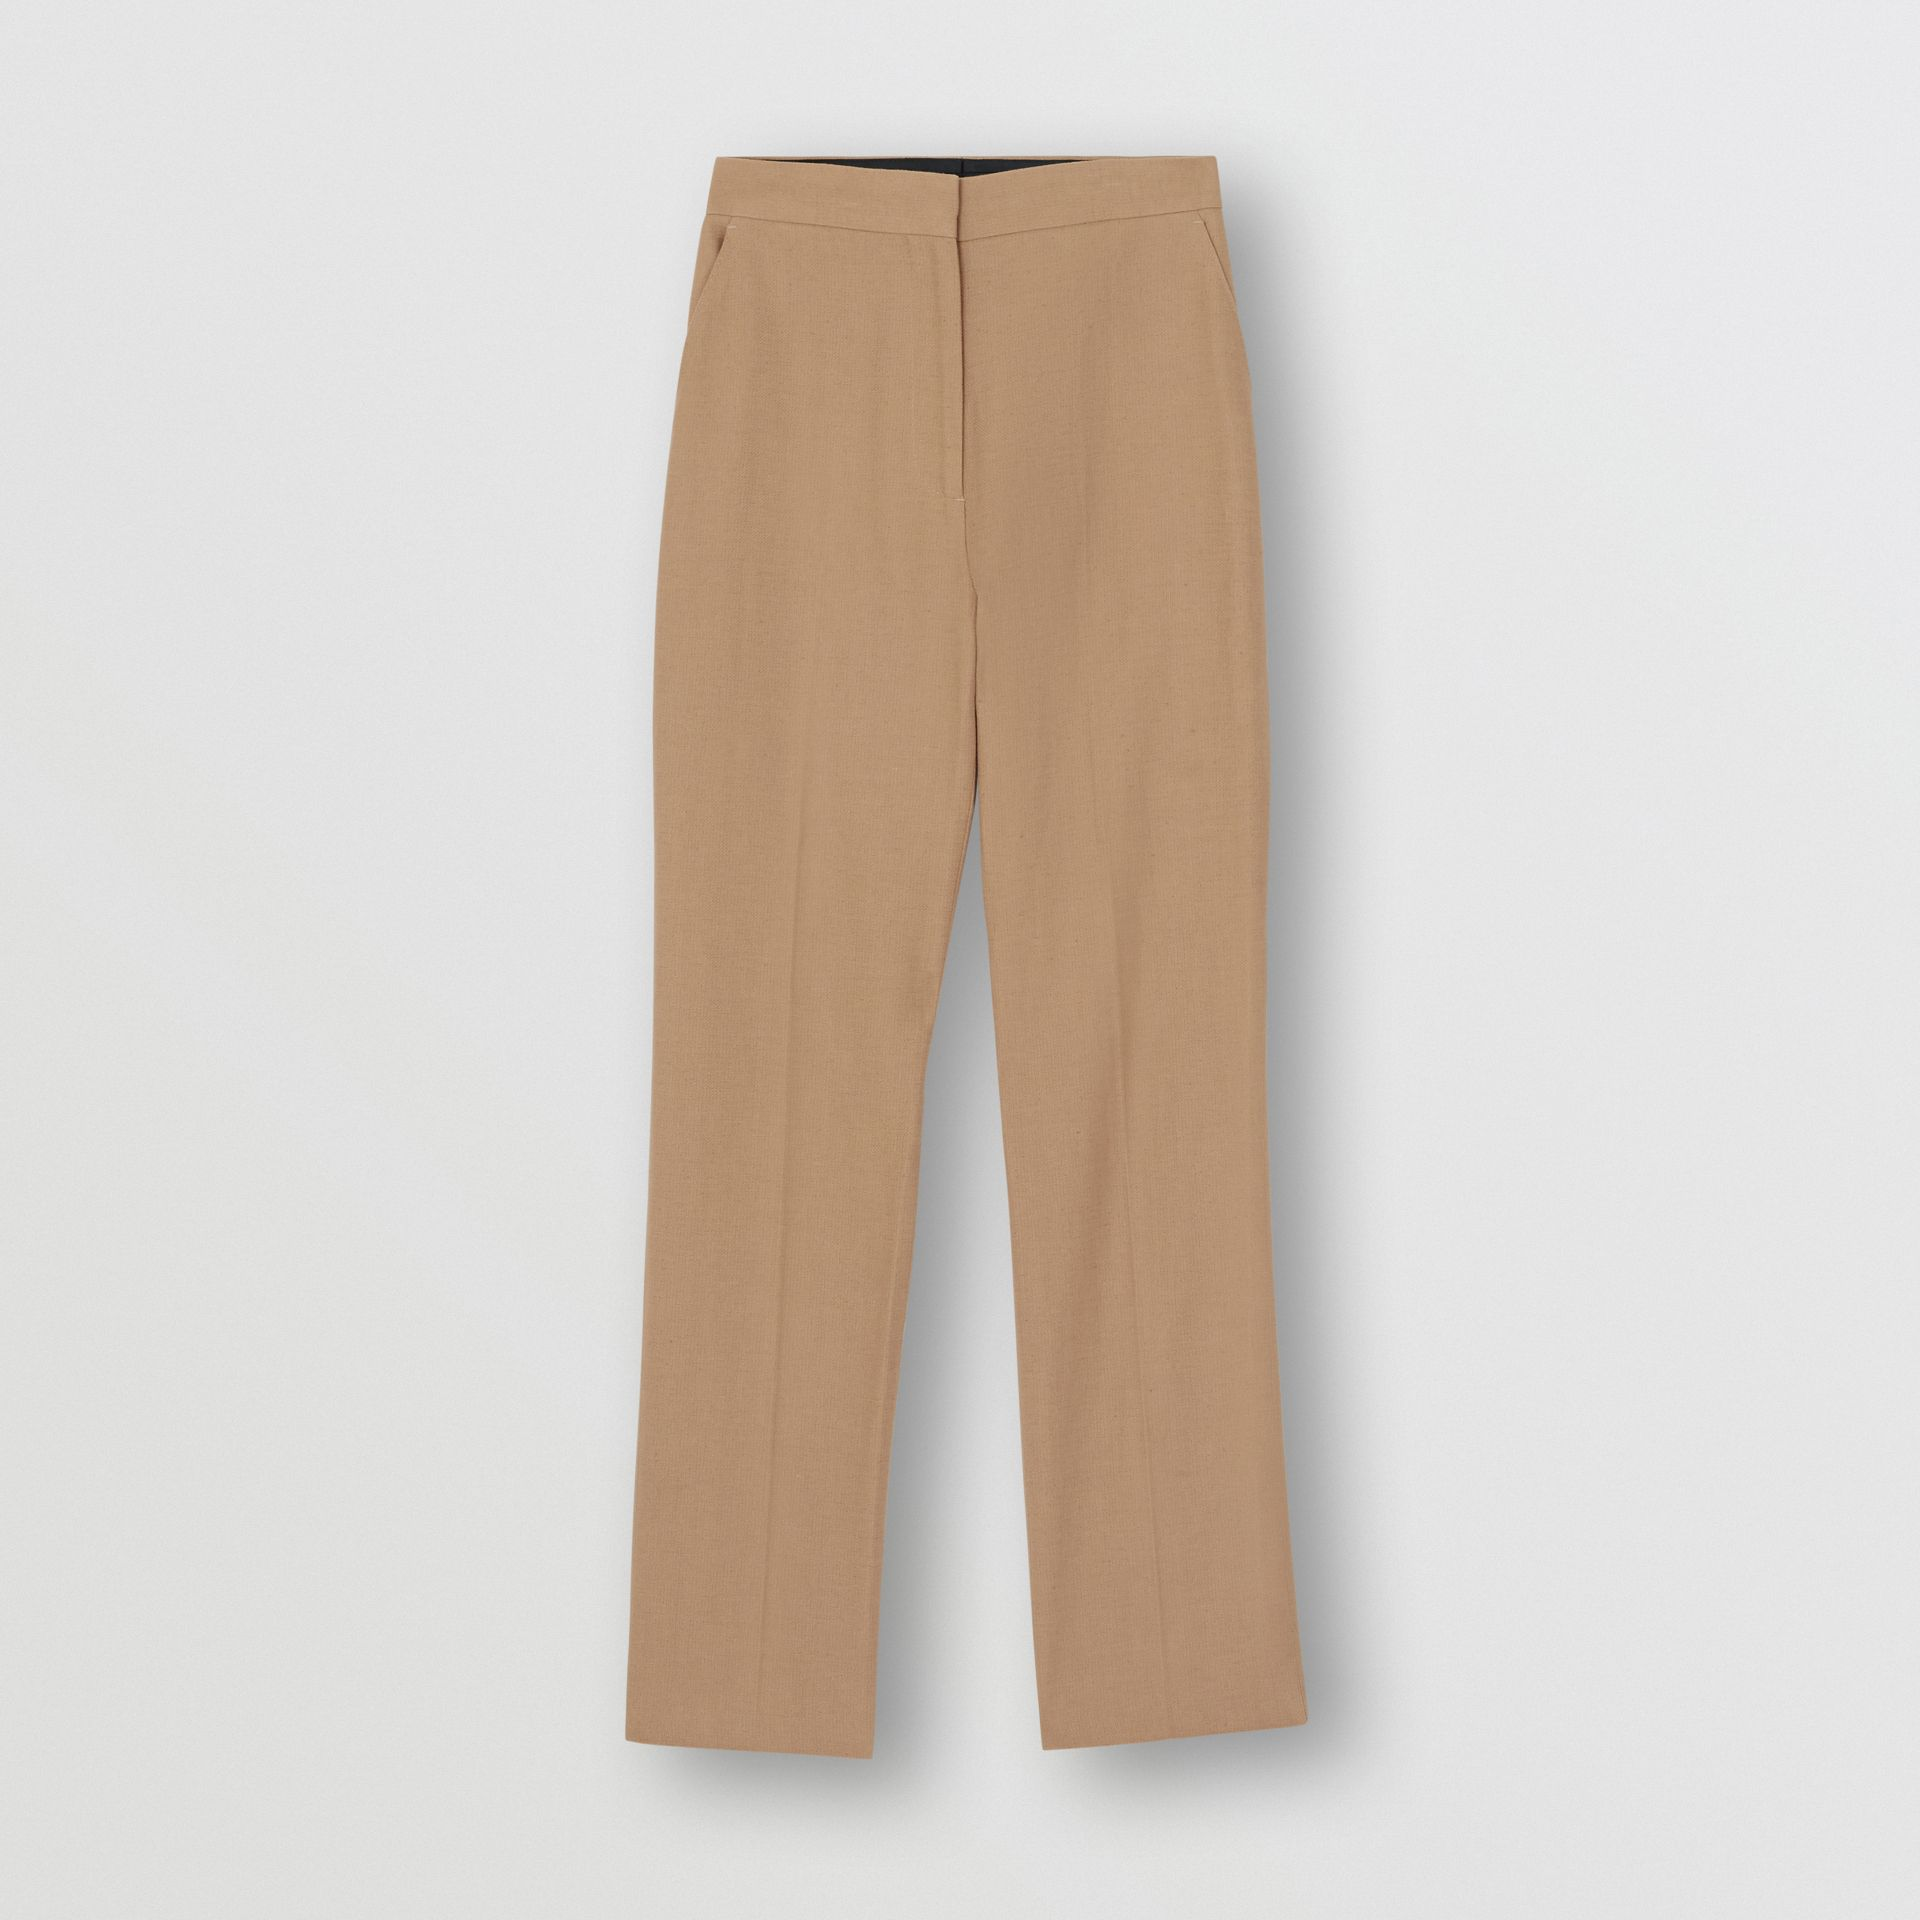 Cotton Linen Tailored Trousers in Ceramic Brown - Women | Burberry - gallery image 3